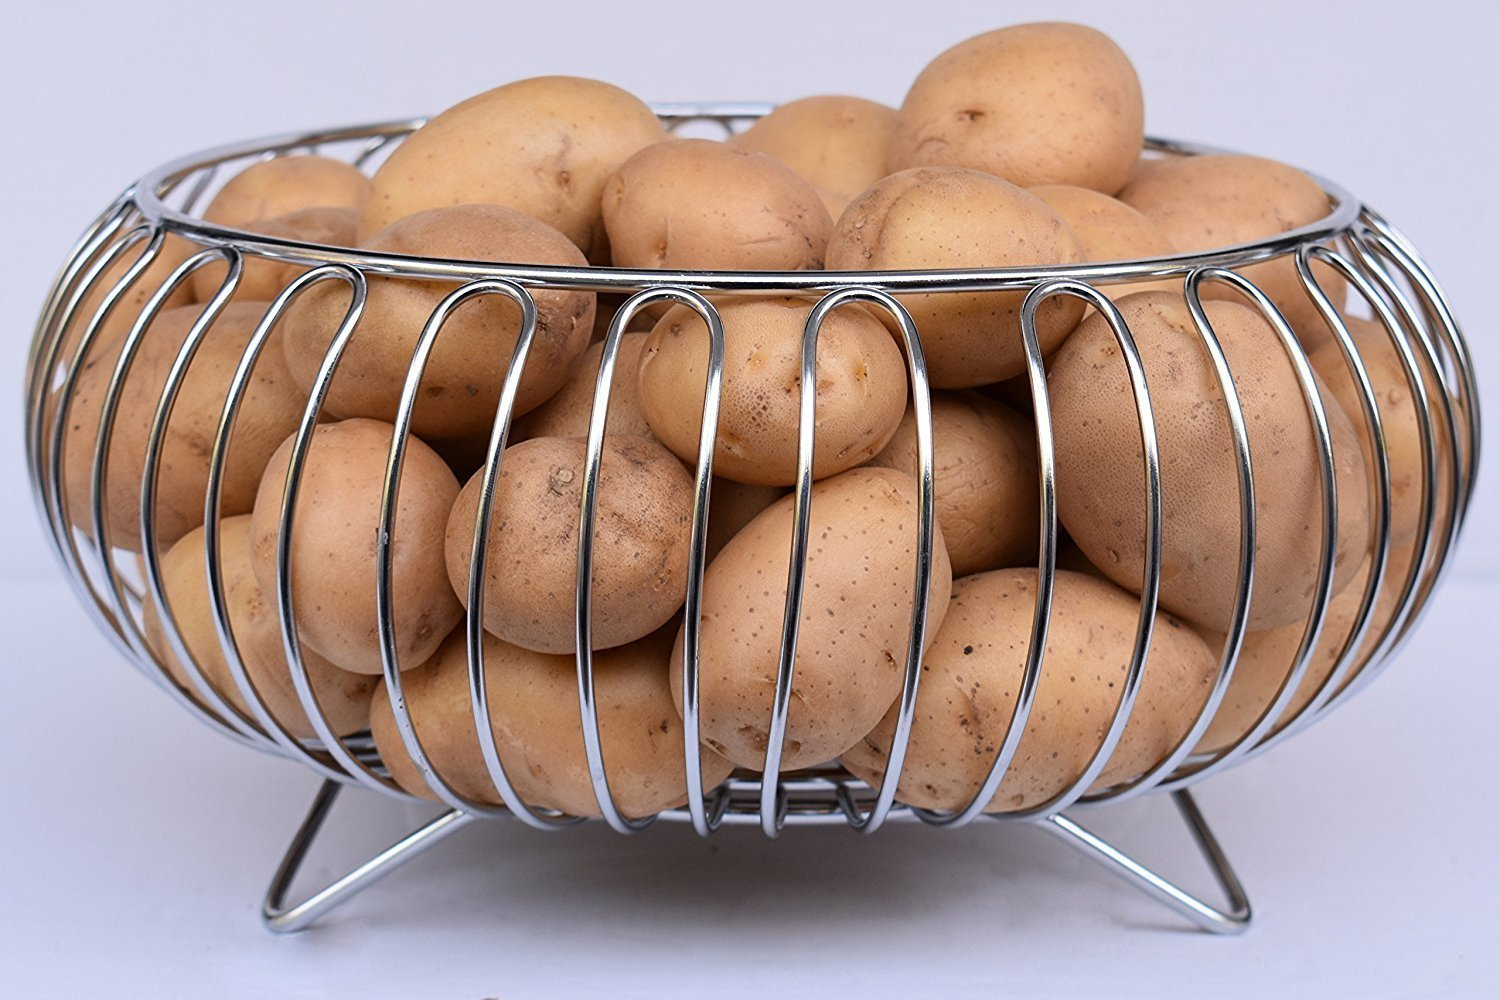 Heavy Stainless Steel Vegetable and Fruit Bowl Basket - Nickel Chrome Plated